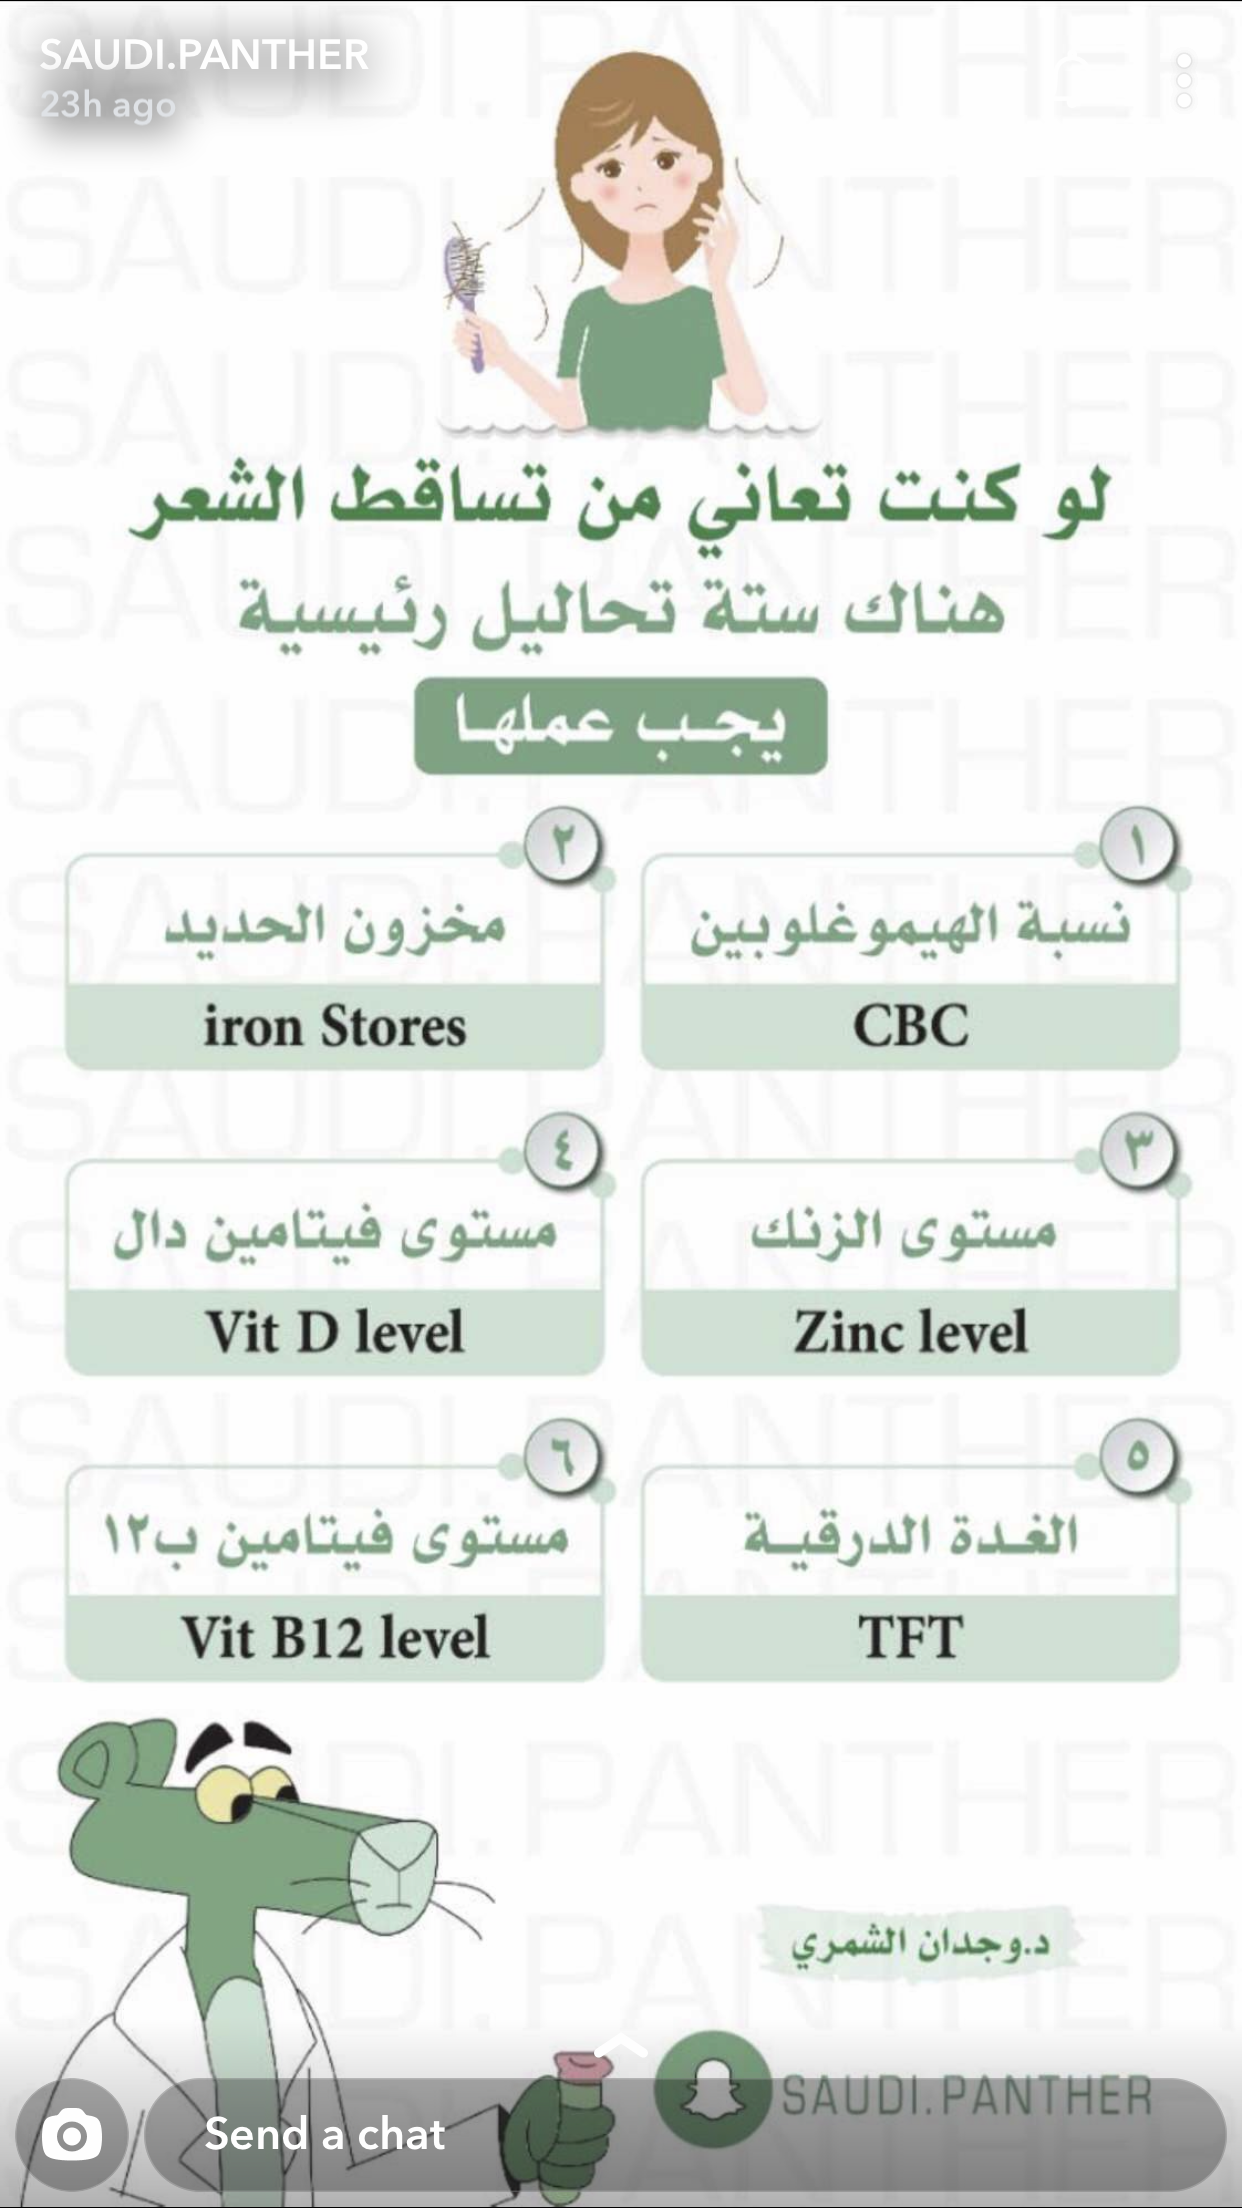 Pin By S On Saudi Panther Face Skin Care Routine Glowing Skin Mask Face Skin Care